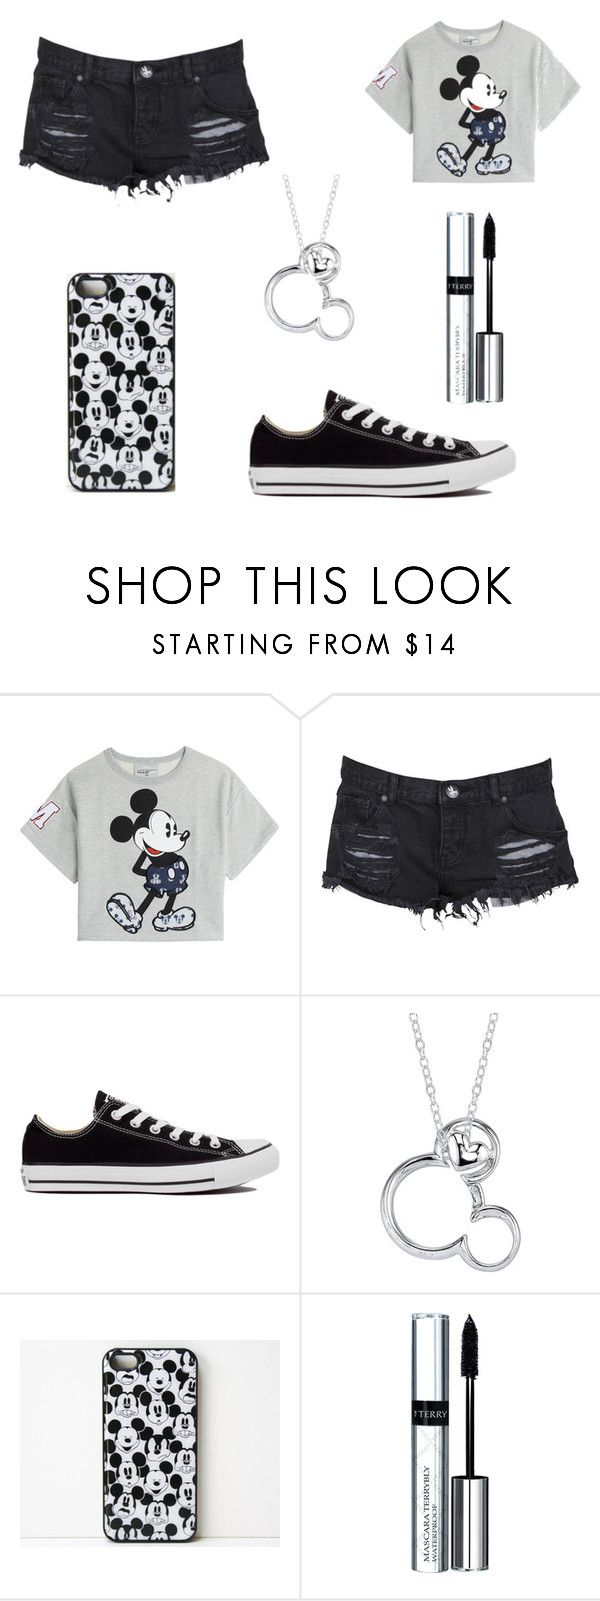 """""""Untitled #33"""" by chocolategirl13 ❤ liked on Polyvore featuring Paul & Joe Sister, One Teaspoon, Converse, Disney, By Terry, women's clothing, women, female, woman and misses"""